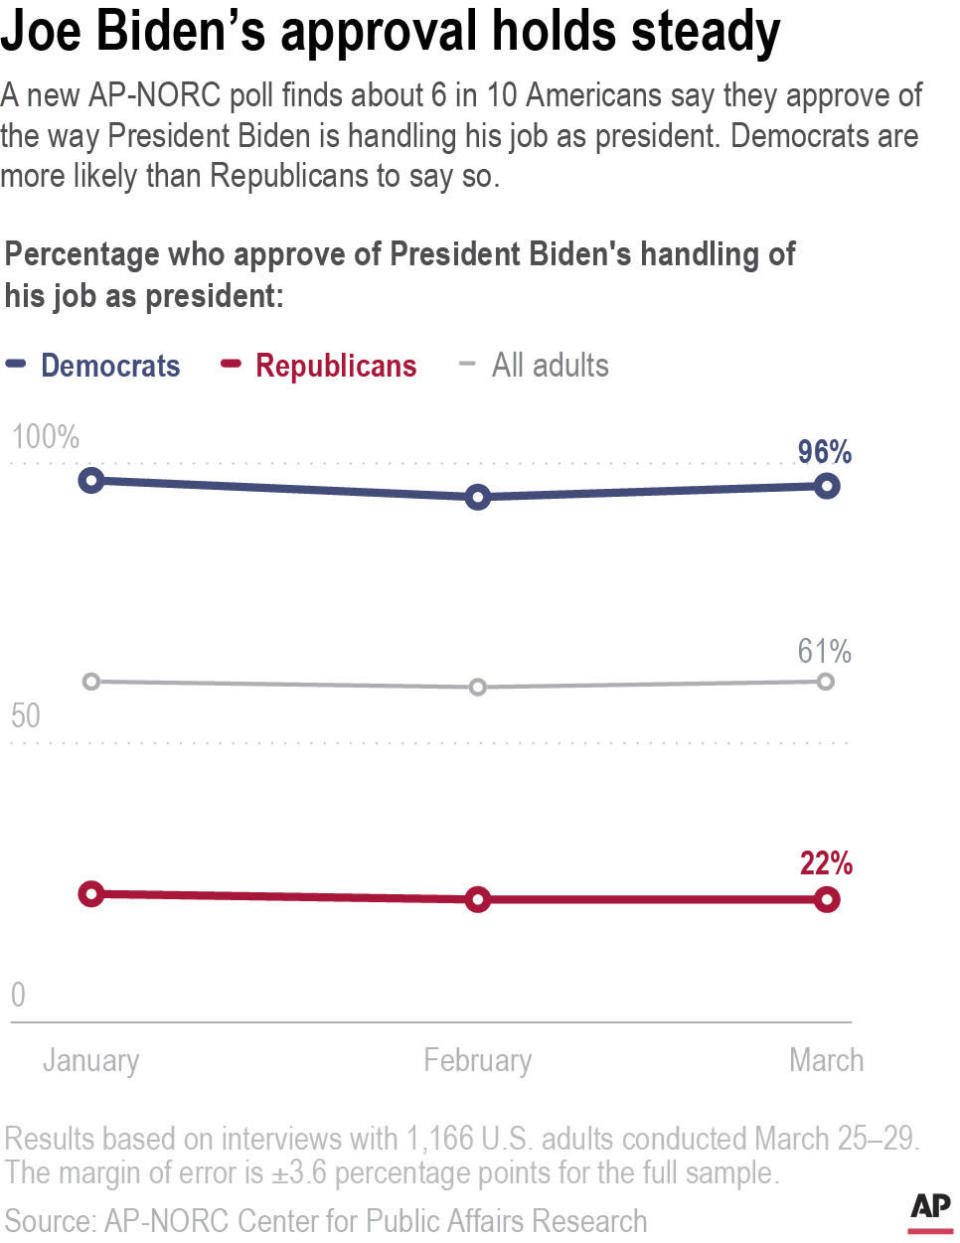 A new AP-NORC poll finds about 6 in 10 Americans say they approve of the way President Biden is handling his job as president. Democrats are more likely than Republicans to say so.